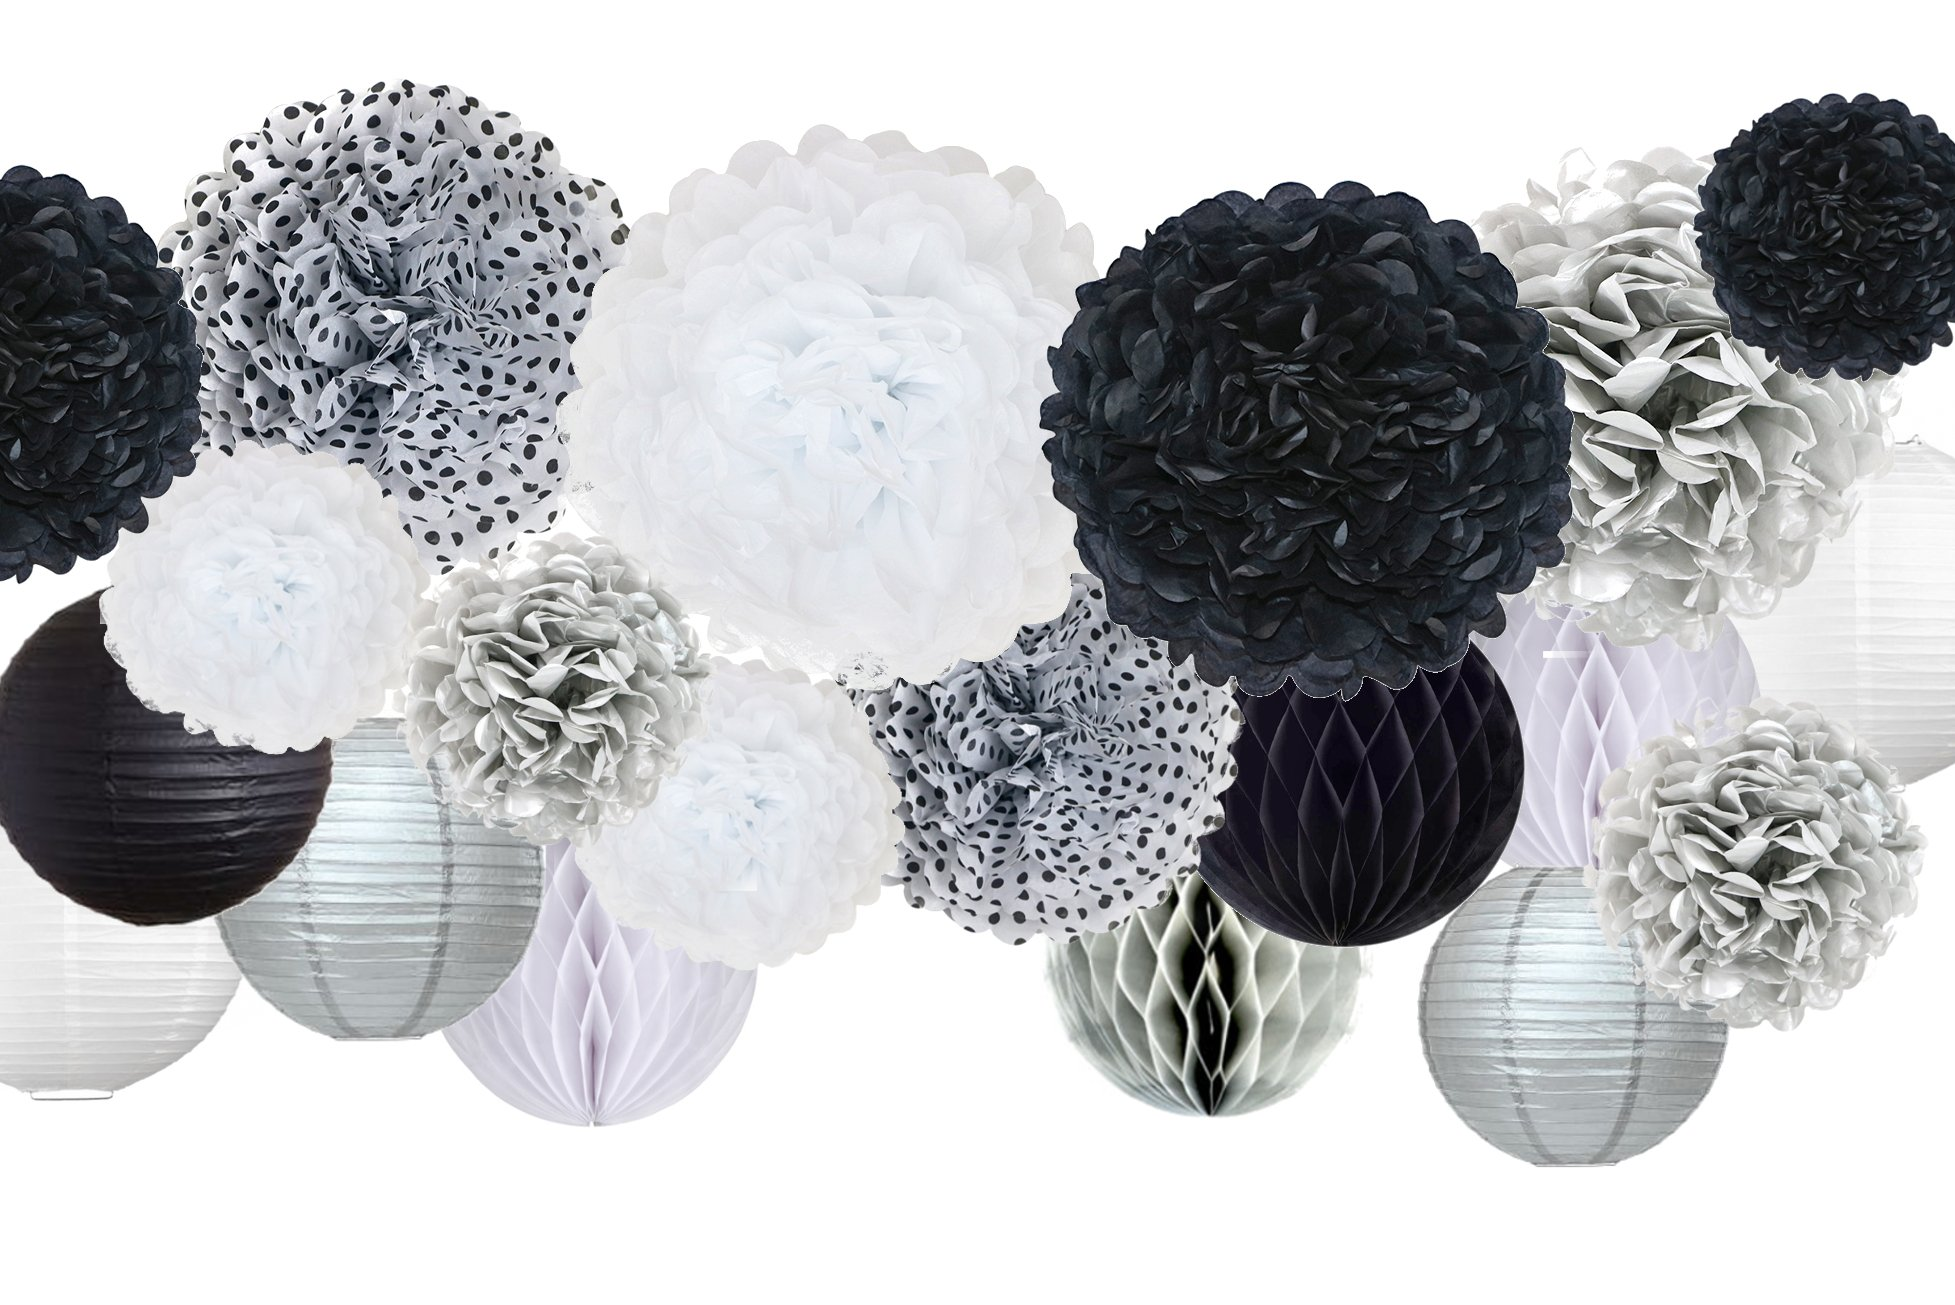 30 Pcs Tissue Paper Pom Pom Kit, Mixed Sizes 14'', 10'', 8'', 6'', Paper Flowers, Lanterns, Honeycomb Balls, for Wedding, Birthday, Anniversary, Retirement, Bridal Shower, Black, Silver, White, Polka dot by Vidal Crafts for a perfect party